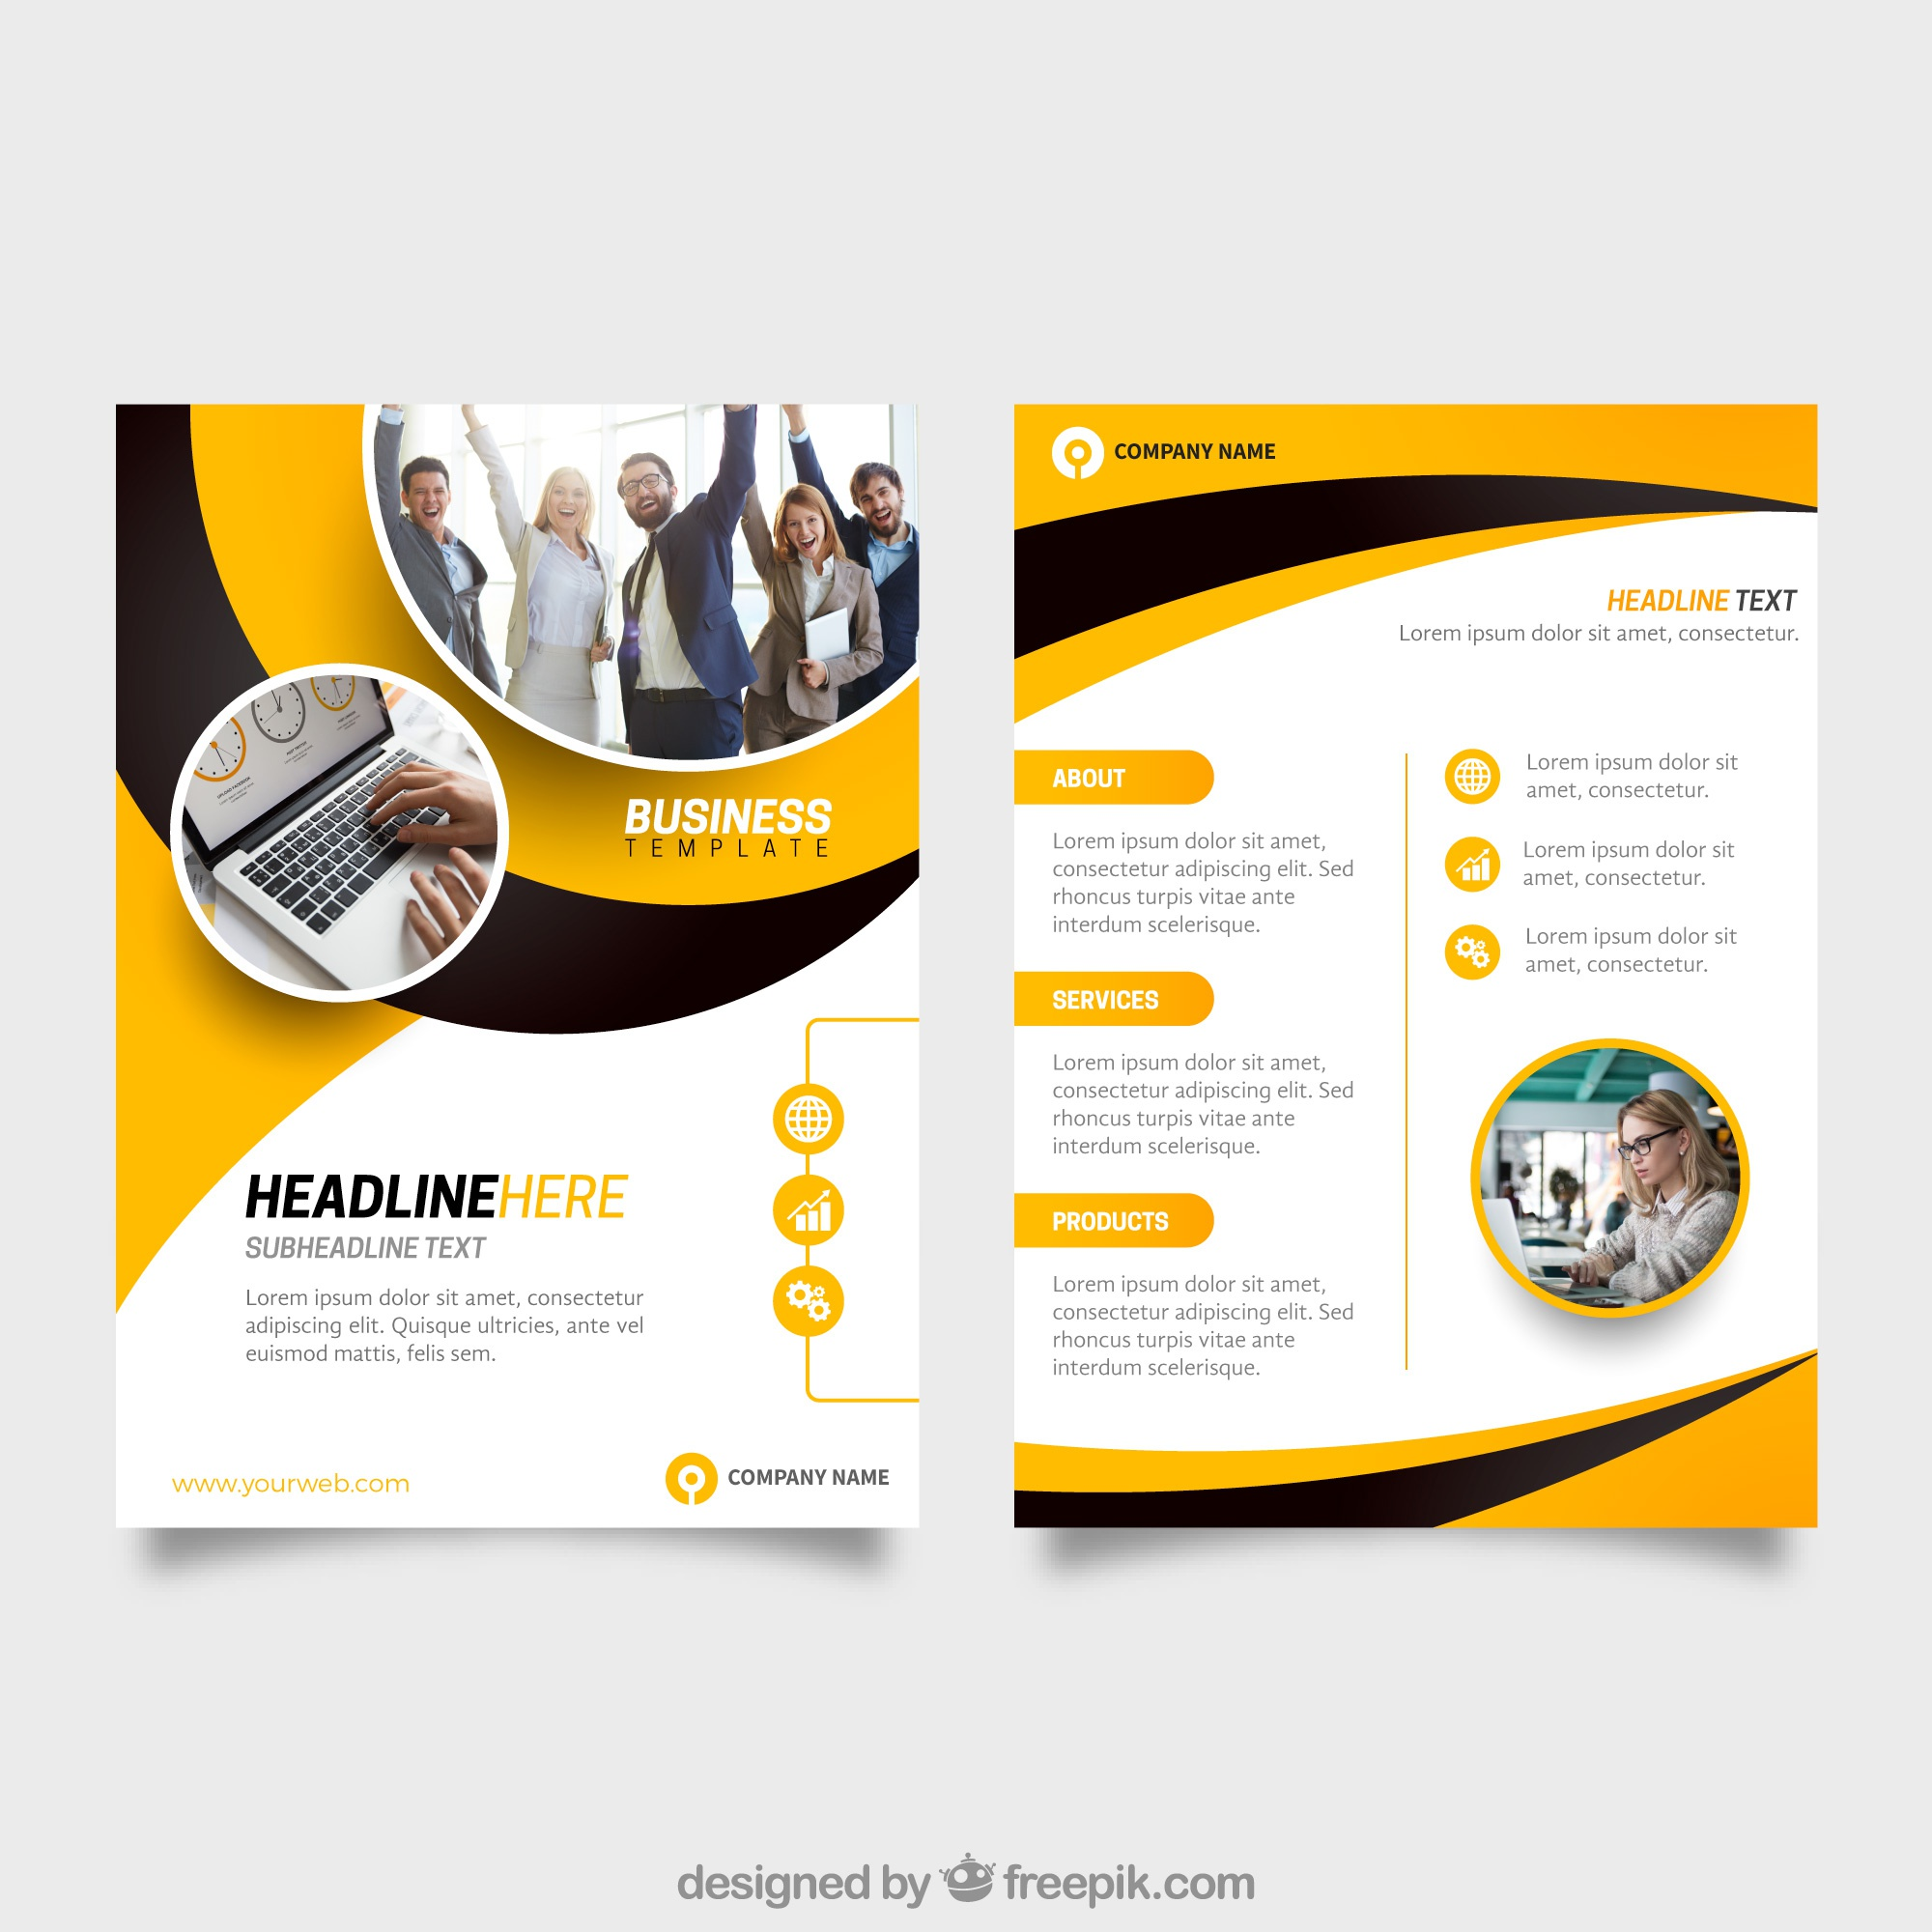 Templates vectors 265800 free files in eps format yellow and black business flyer template flashek Choice Image